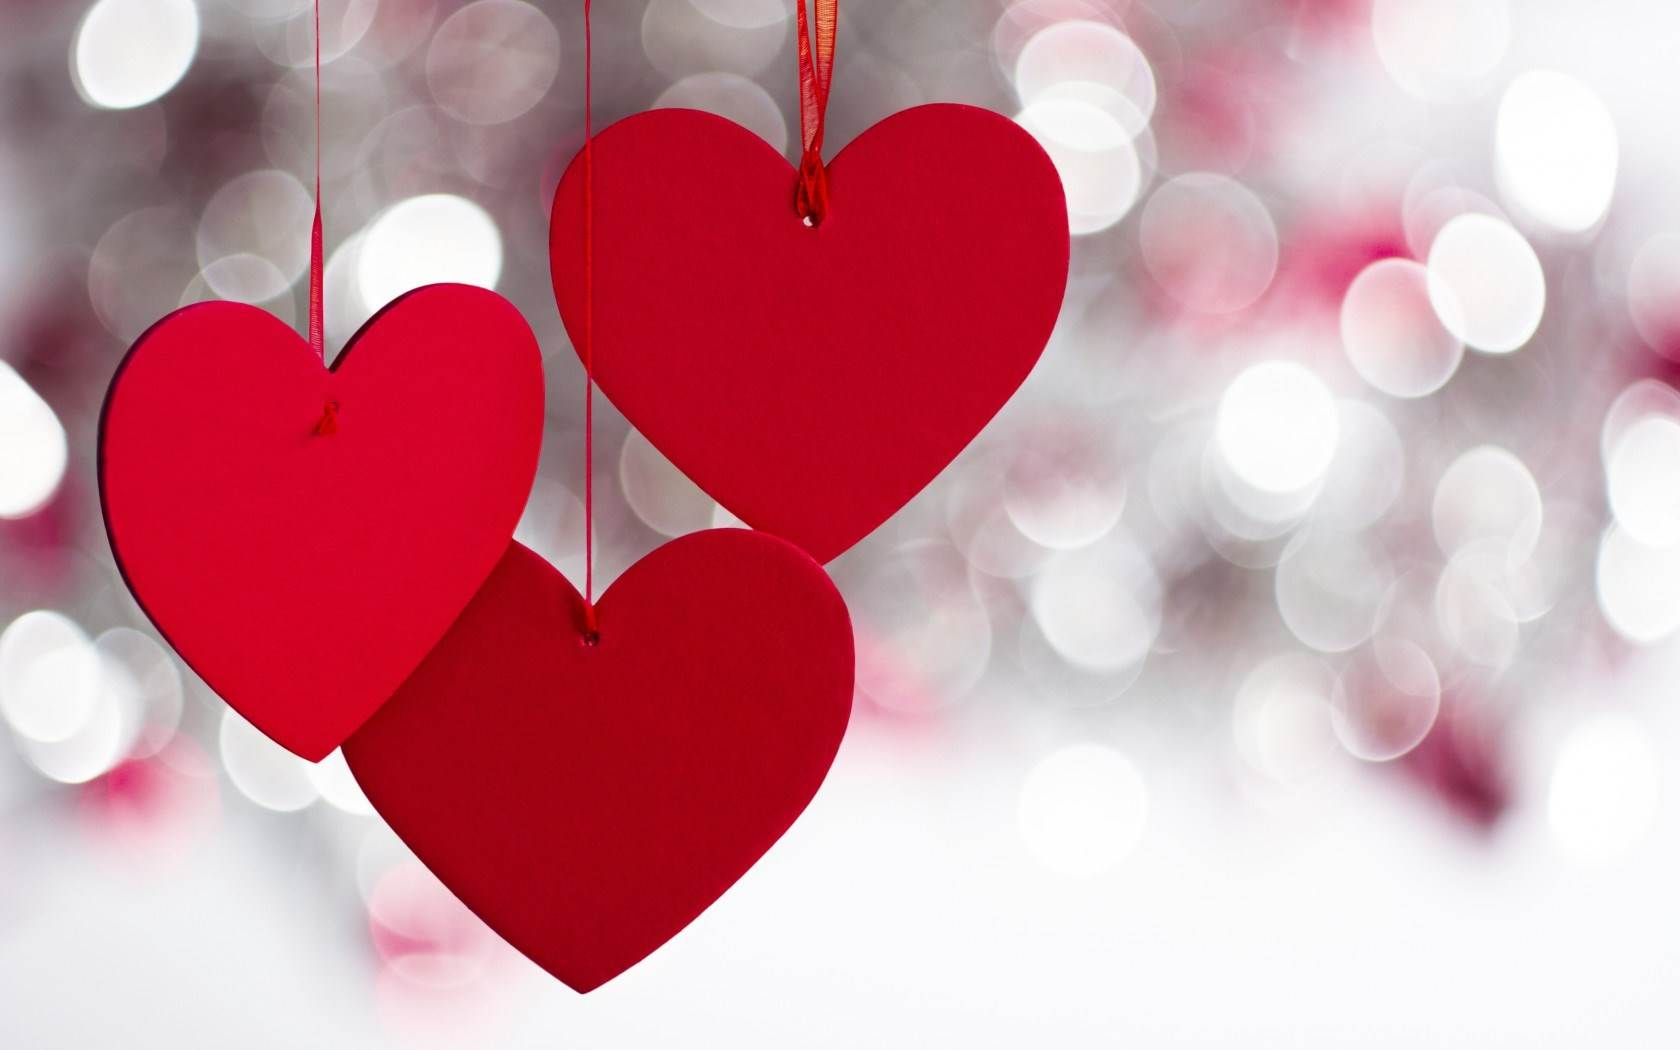 heart wallpapers 1680x1050